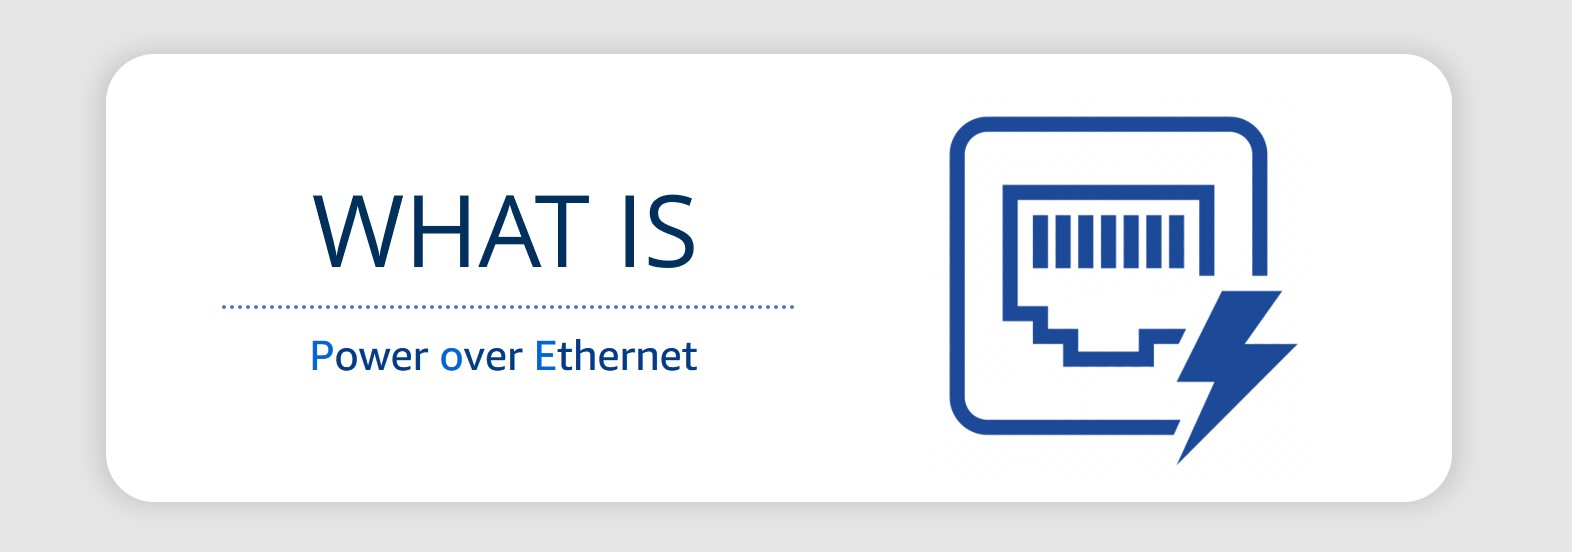 uctronics what is poe power over ethernet